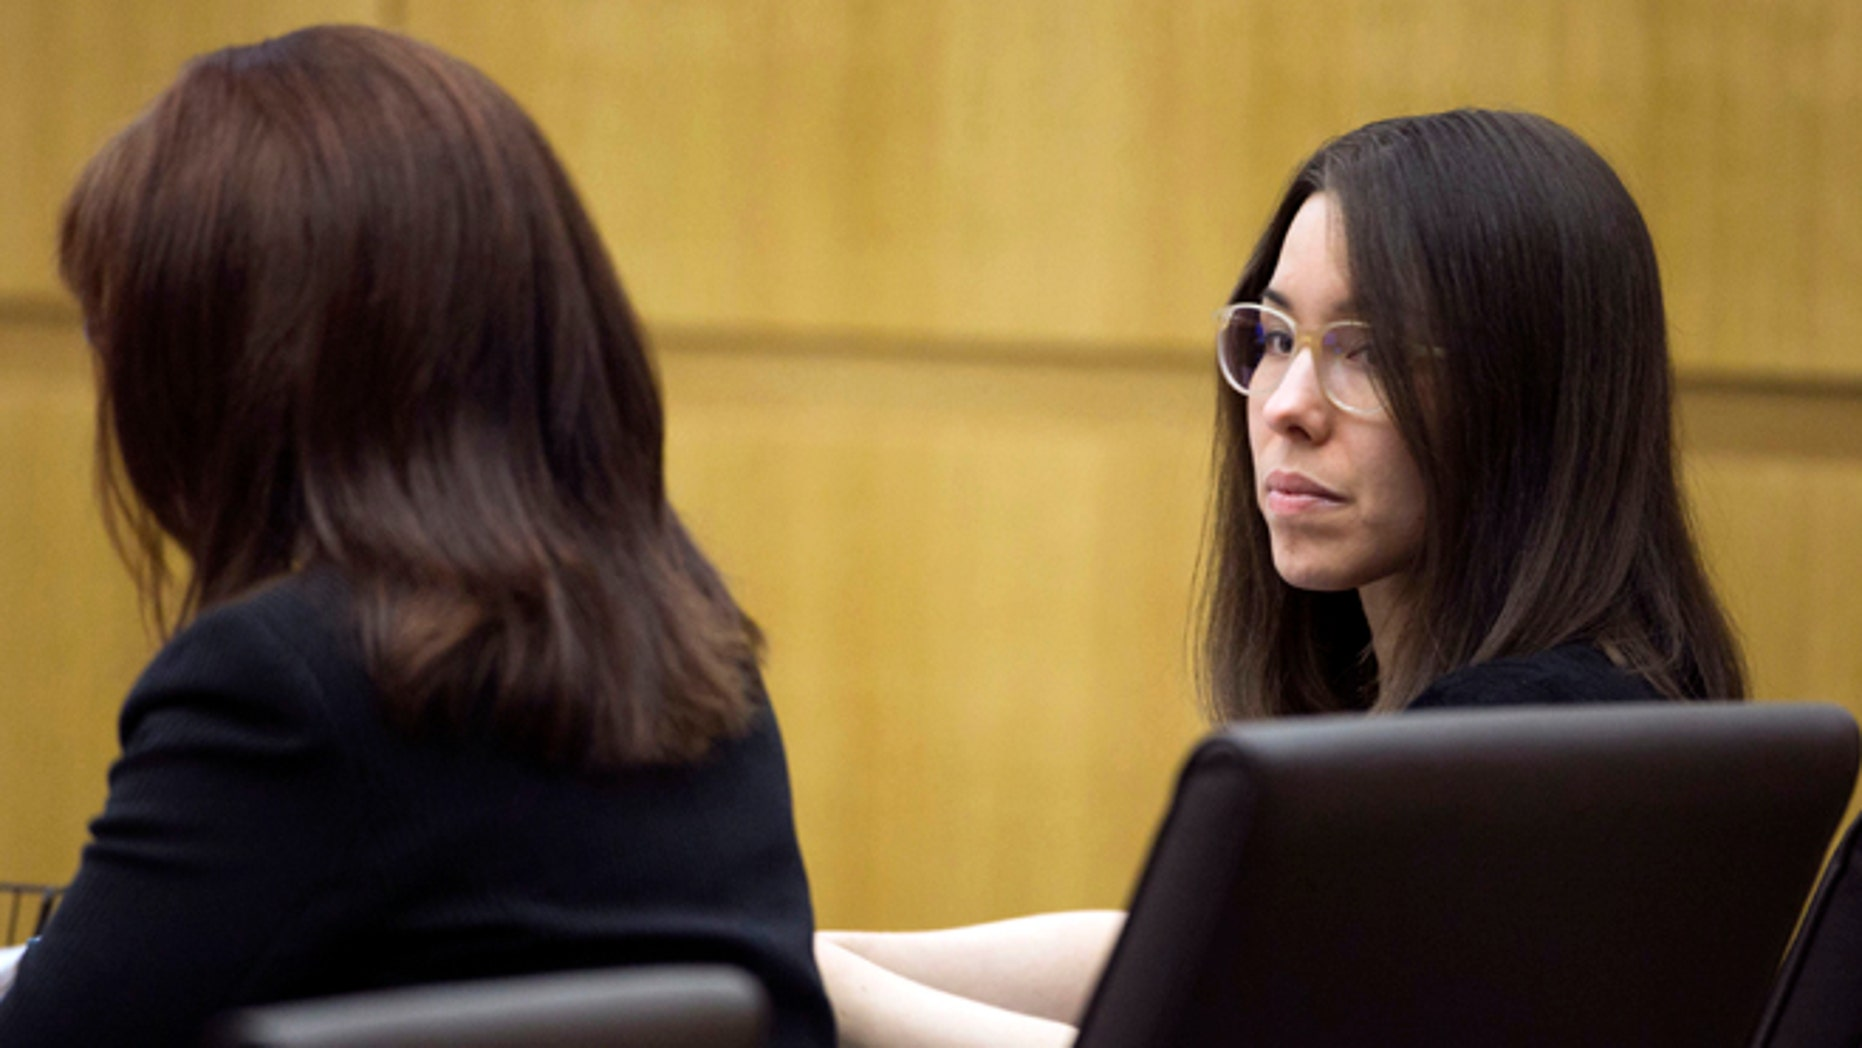 Jodi Arias looks on during the sentencing phase retrial of Jodi Arias at Maricopa County Superior Court in Phoenix on Thursday, Oct. 30, 2014. Arias was found guilty of first degree murder in the death of former boyfriend Travis Alexander, but the jury hung on the penalty phase, life in prison or the death sentence.  (AP Photo/The Arizona Republic,David Wallace, Pool)